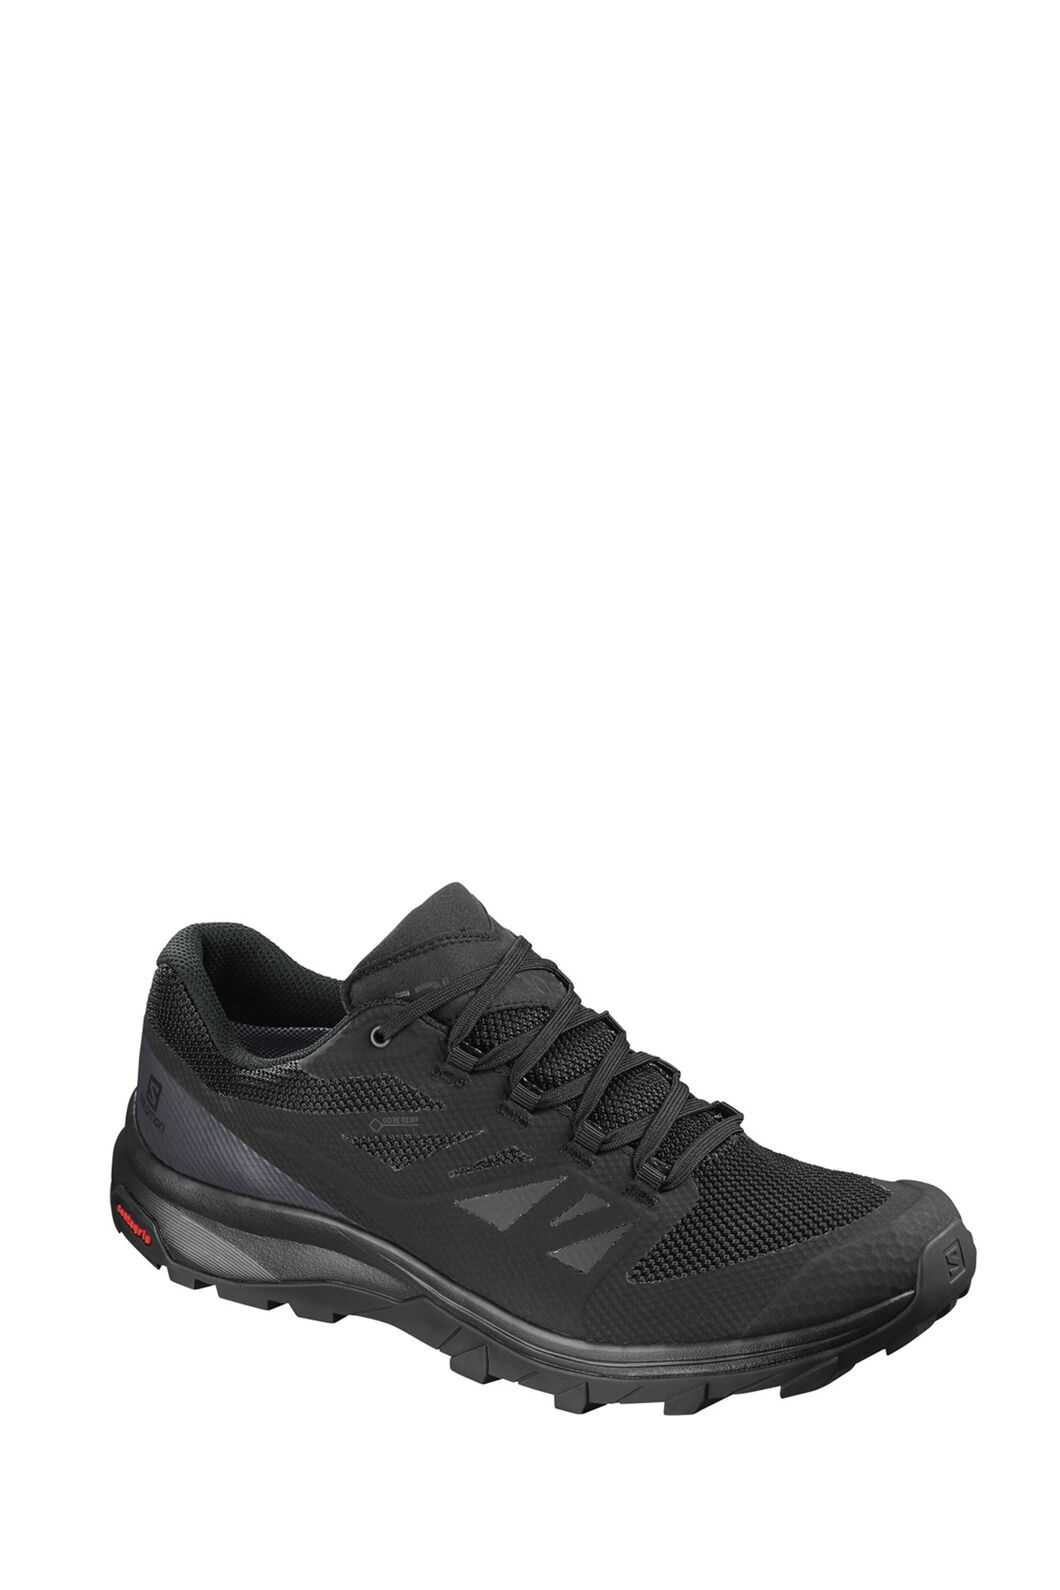 Salomon Outline GTX Hiking Shoes - Men's, Blk/Phantom/Magnet, hi-res